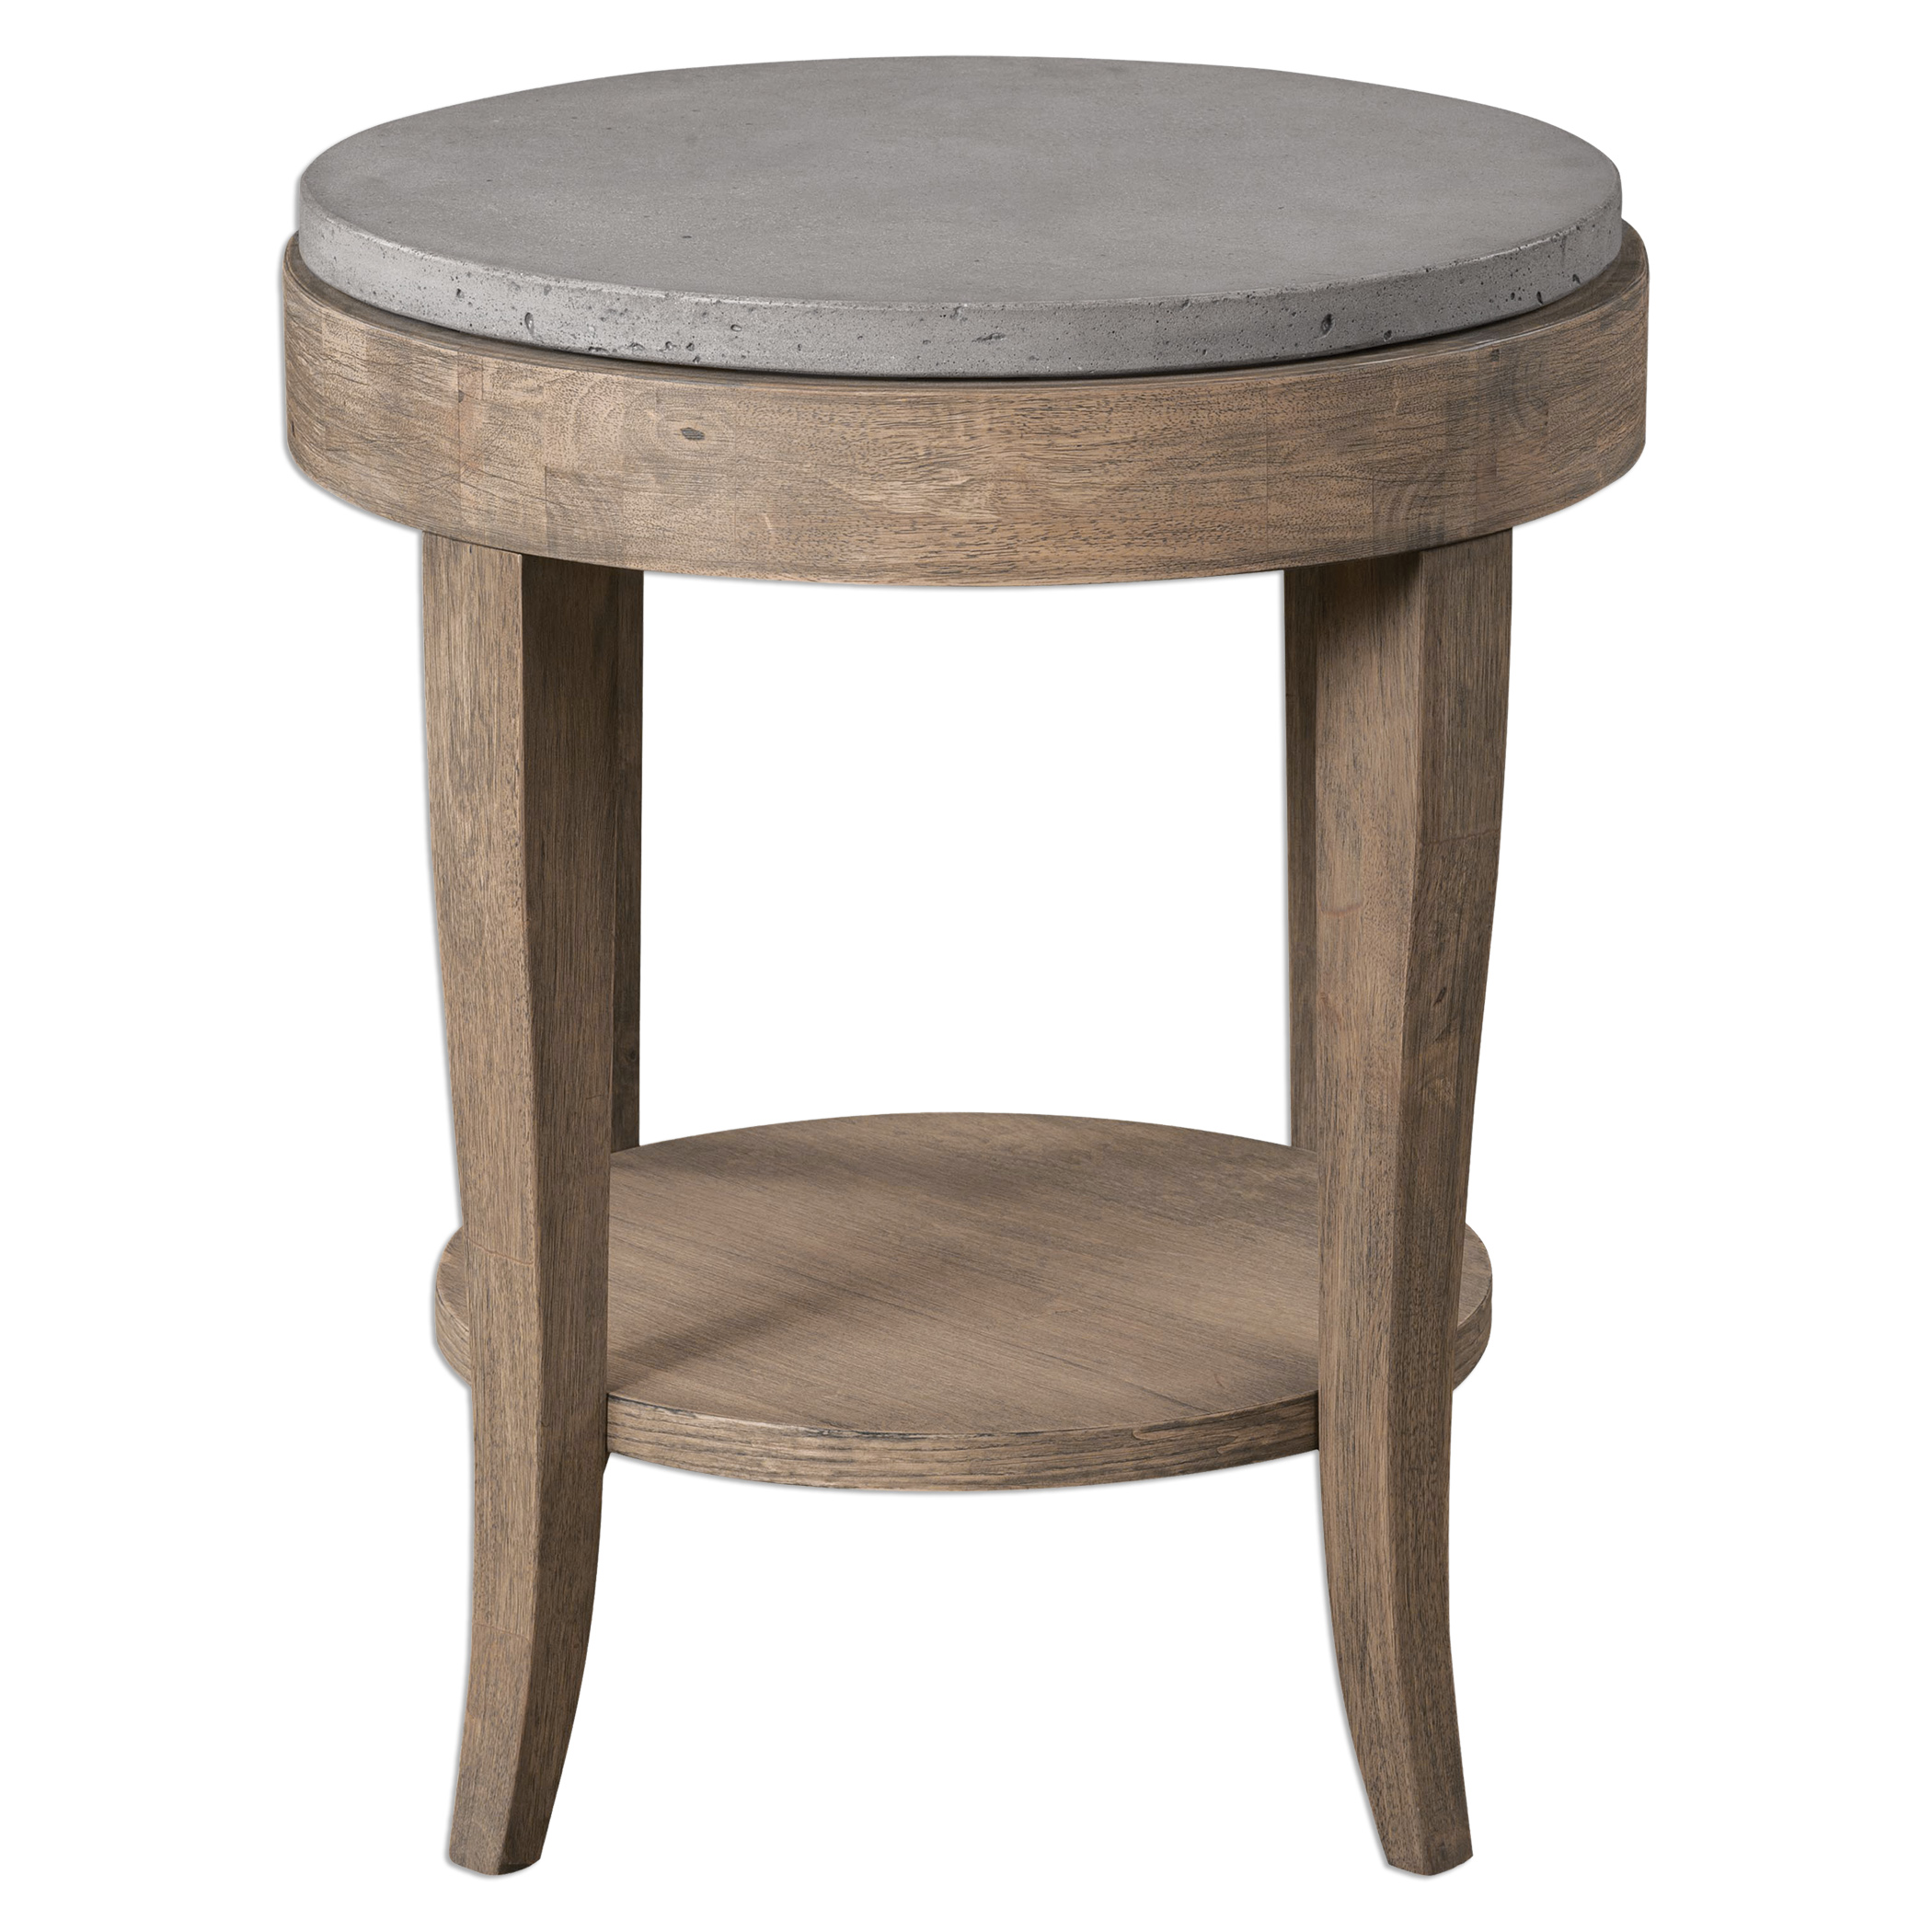 Accent Furniture - Occasional Tables Deka Round Accent Table by Uttermost at Suburban Furniture